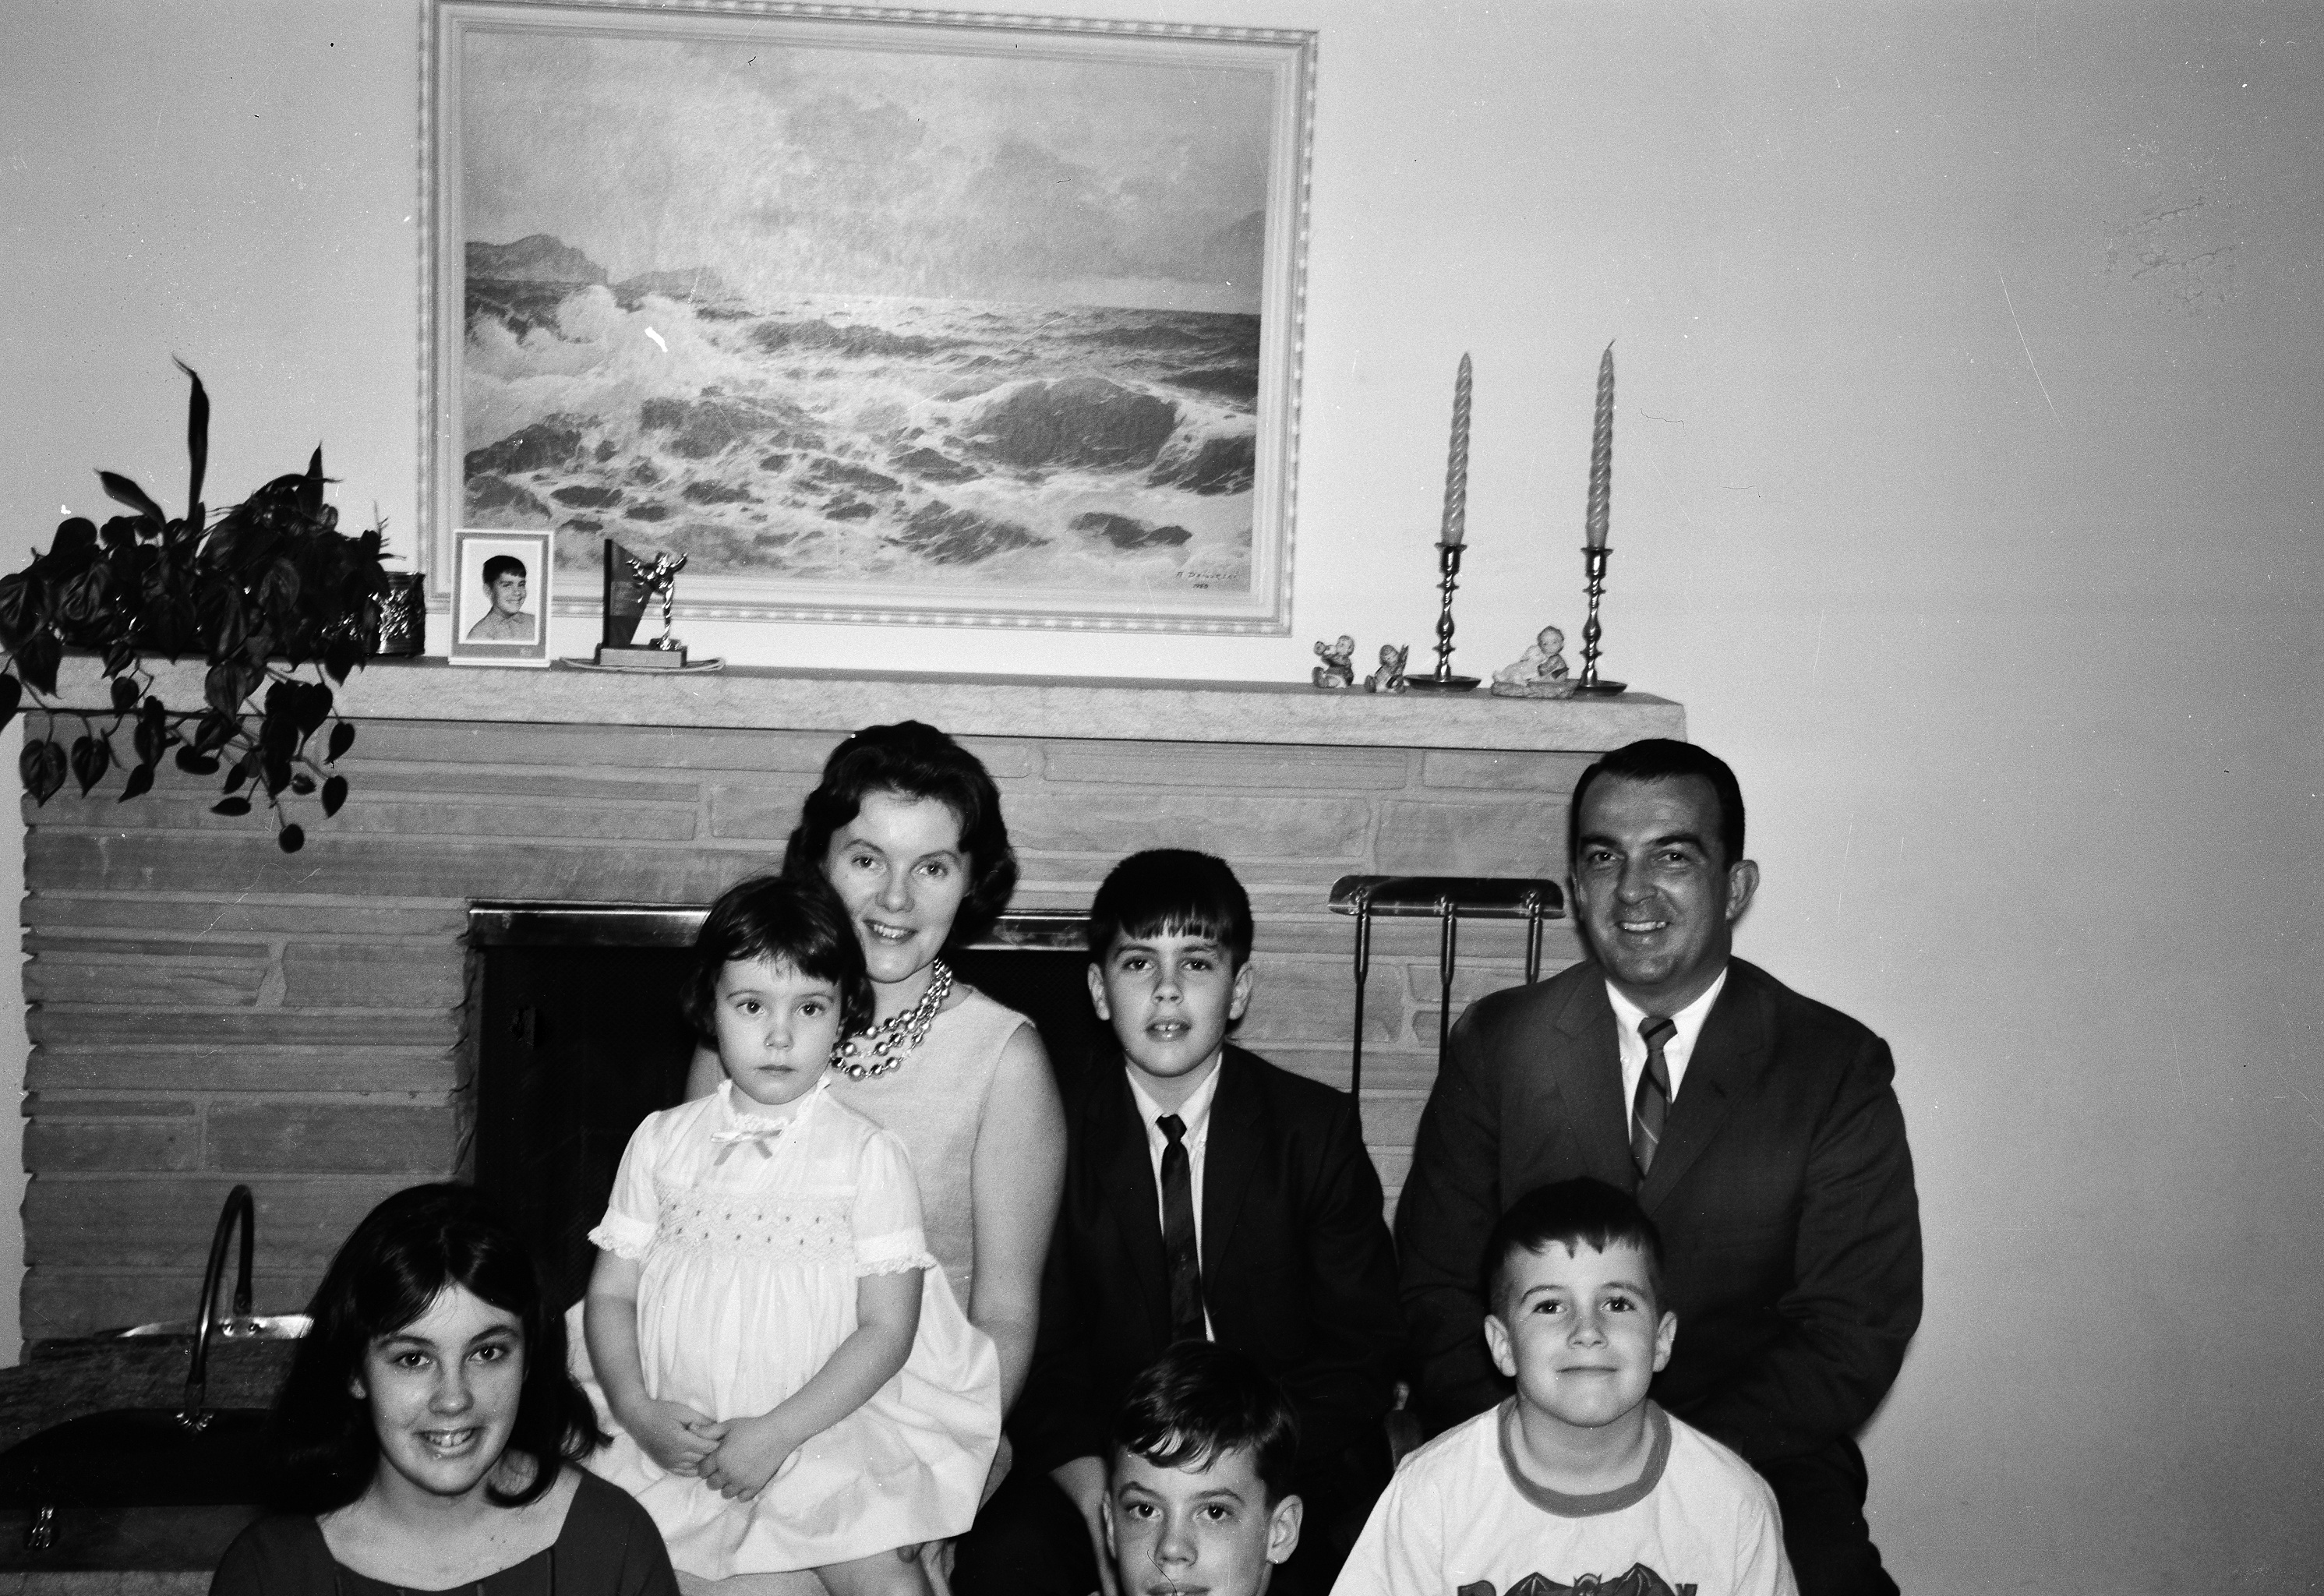 Chris Annas (top center) and family in the early years in Minnesota.